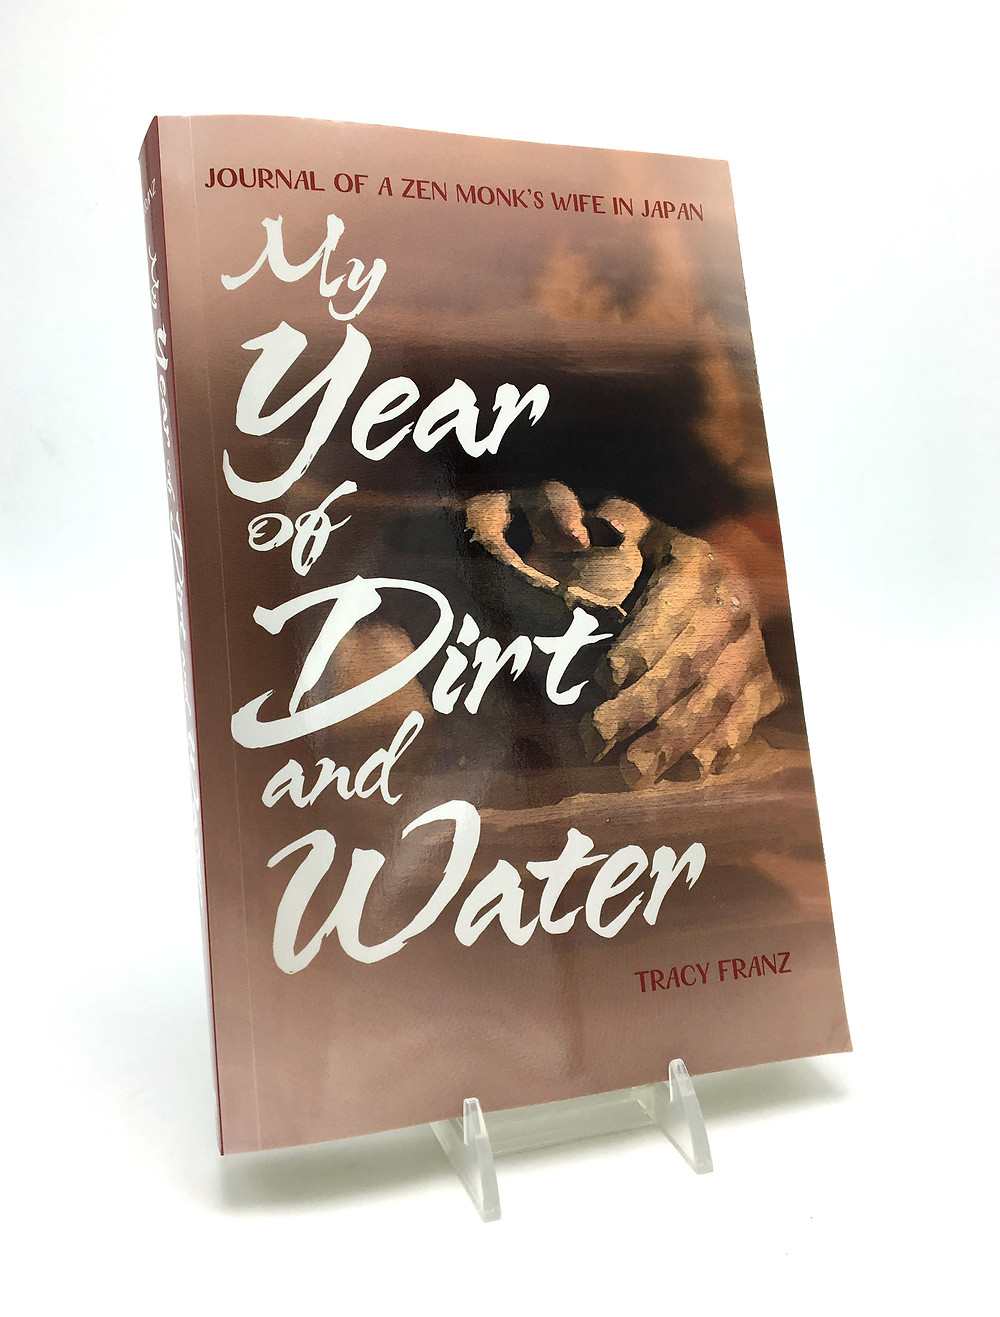 World Literature Today reviews Tracy Franz's 'My Year of Dirt and Water'